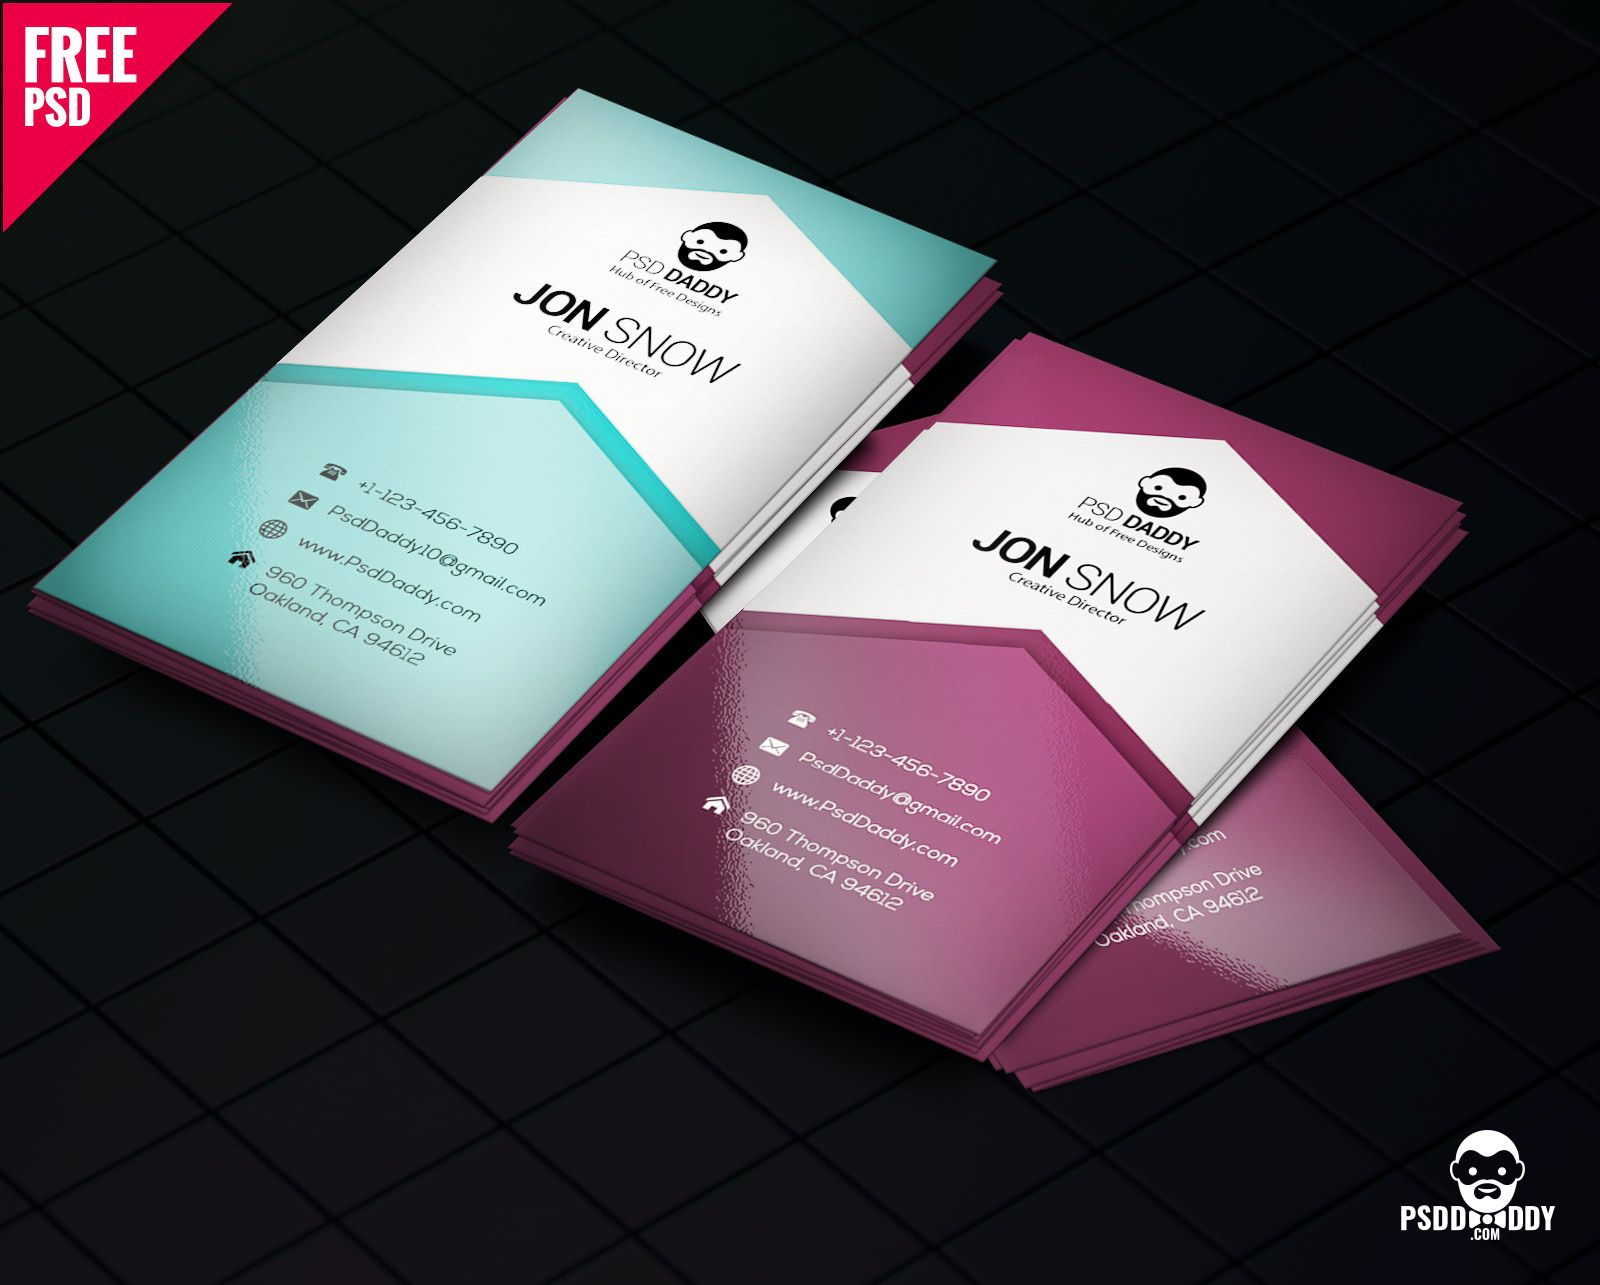 Download Creative Business Card Psd Free Psddaddy Regarding Visi Business Cards Creative Templates Business Card Psd Free Photography Business Cards Template